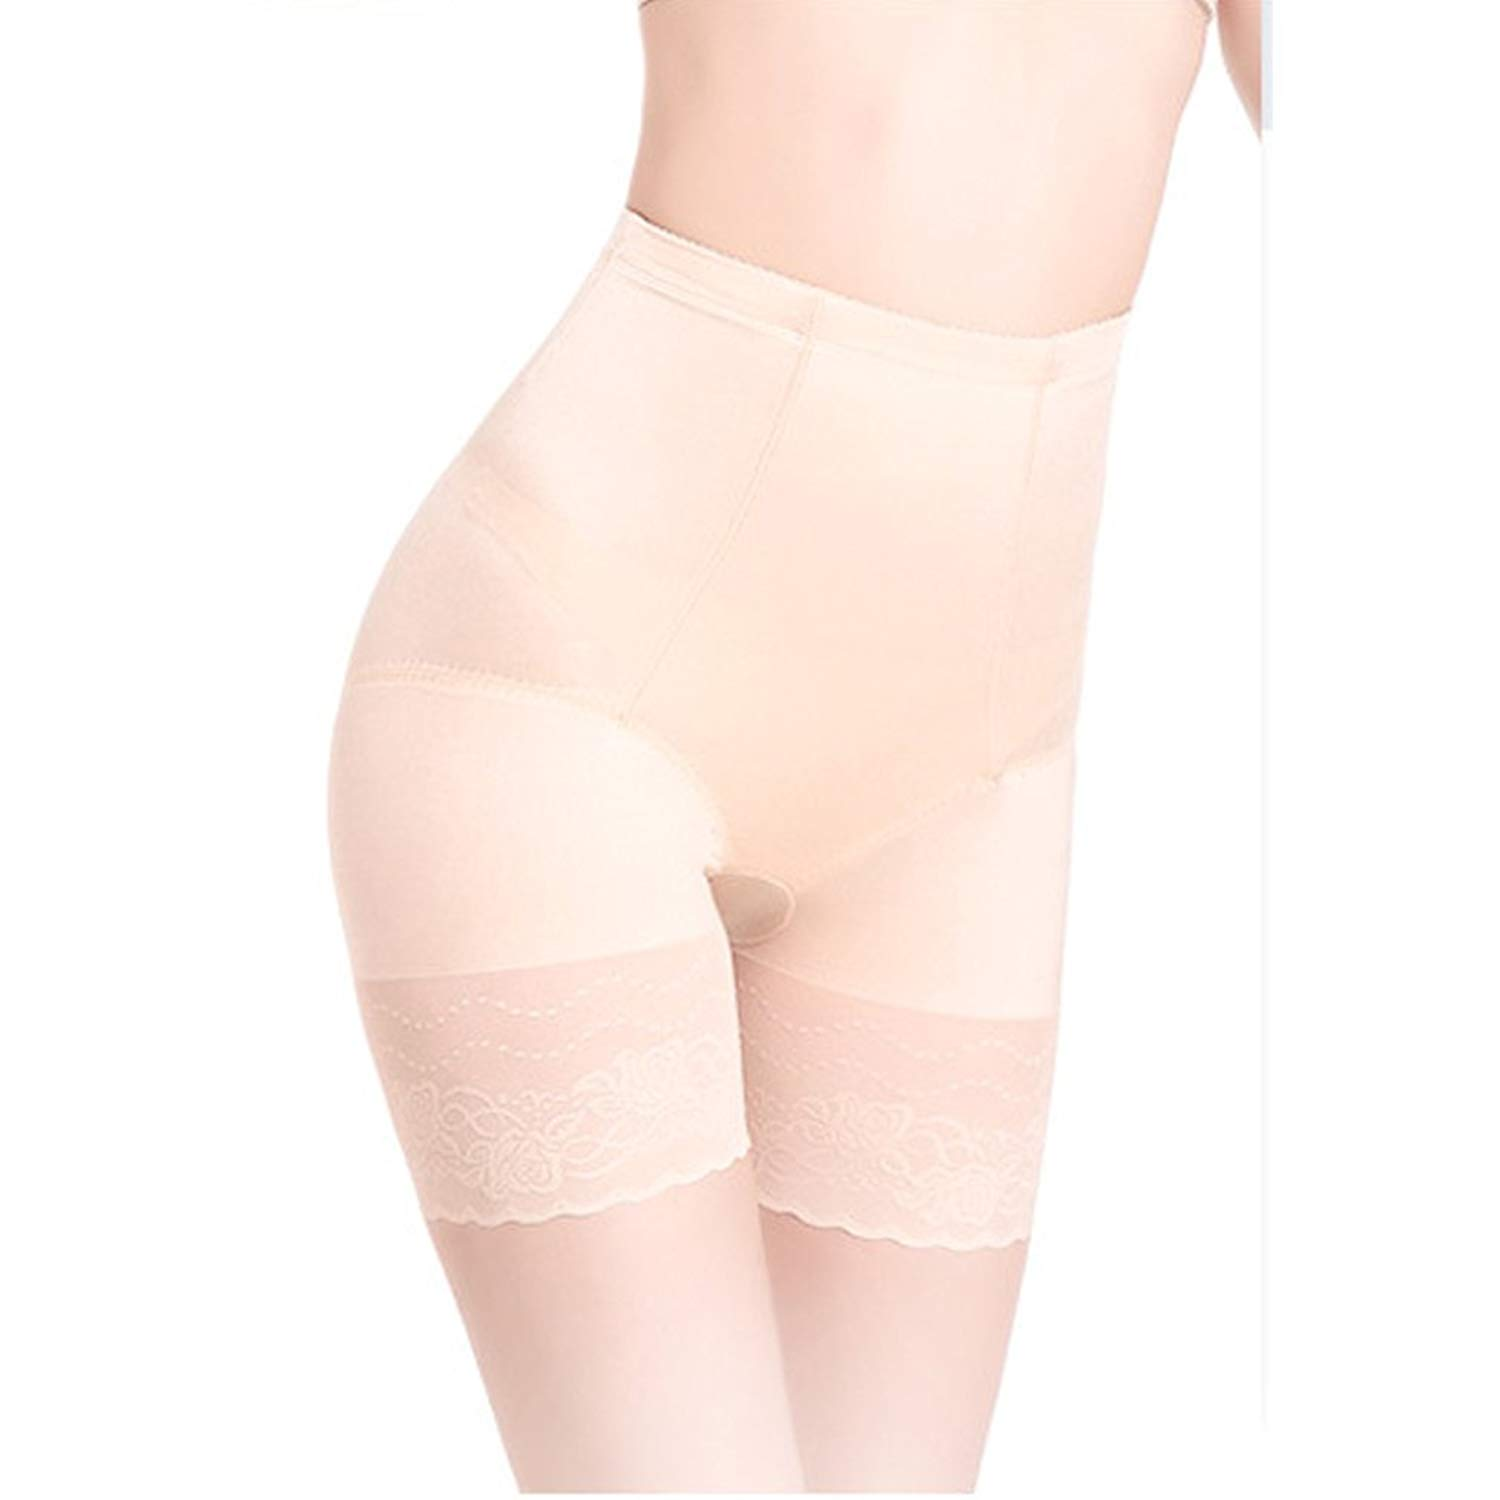 148730446e4 Andy Pansy Women Mid-Waist Control Panties Boyshorts Lace Butt Lifter  Postpartum Underwear